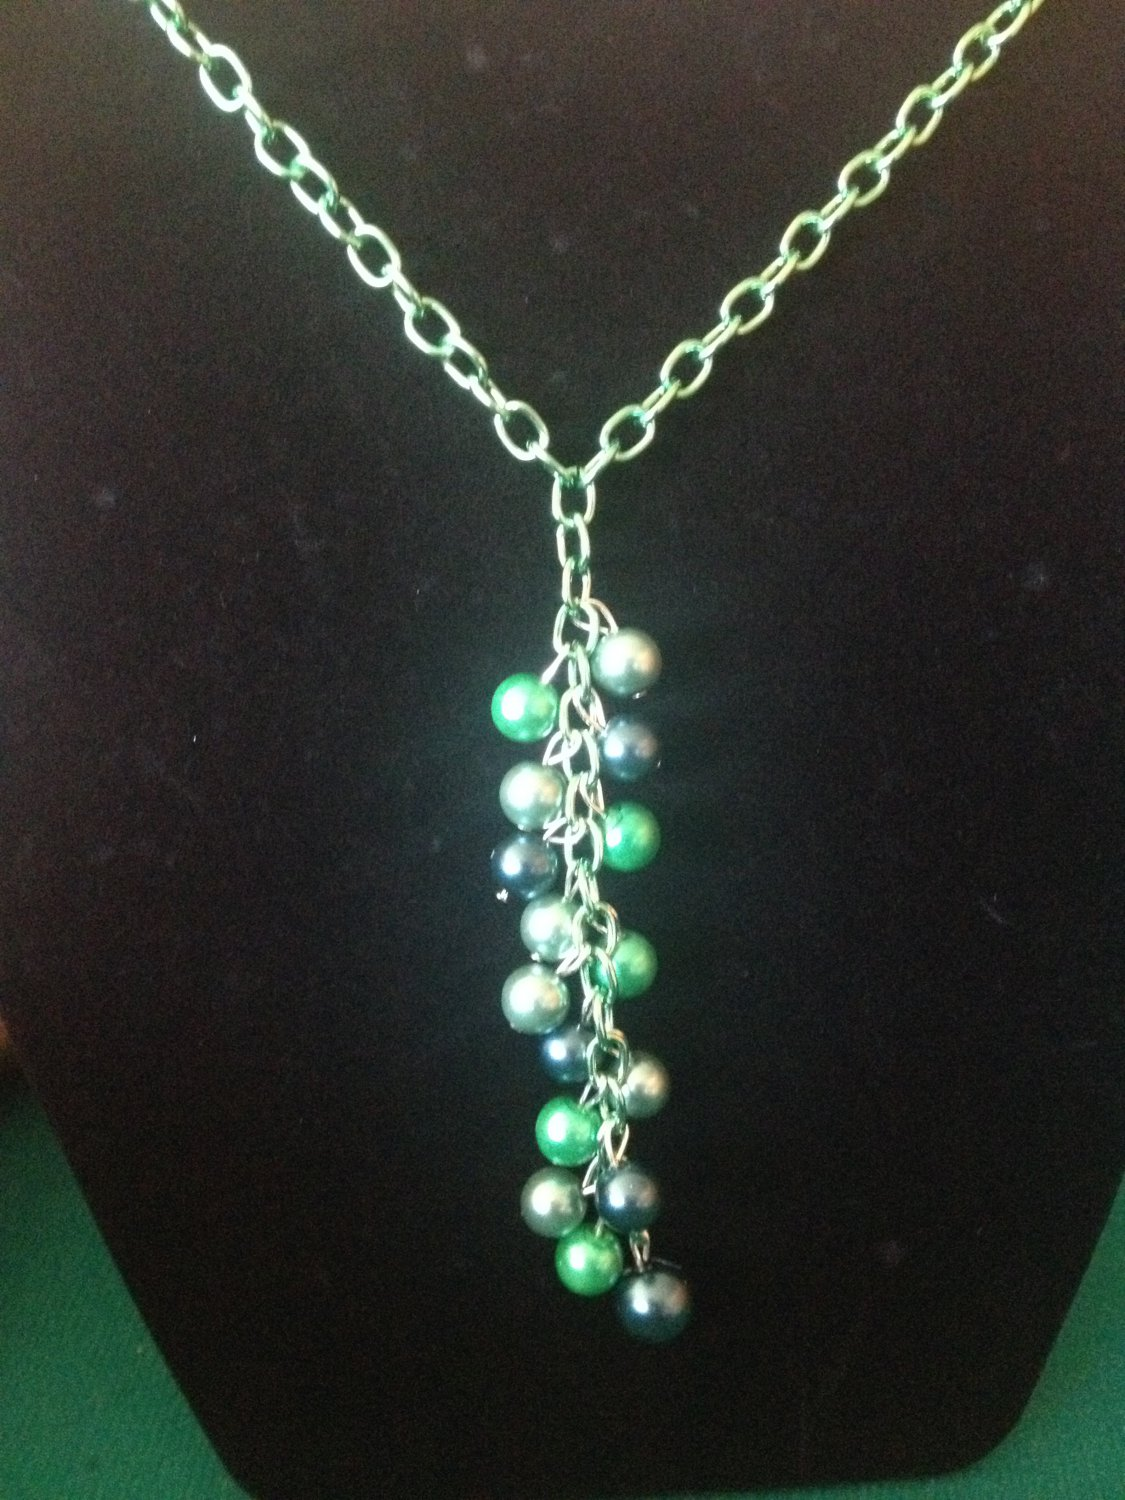 Green pearl and chain neckalce